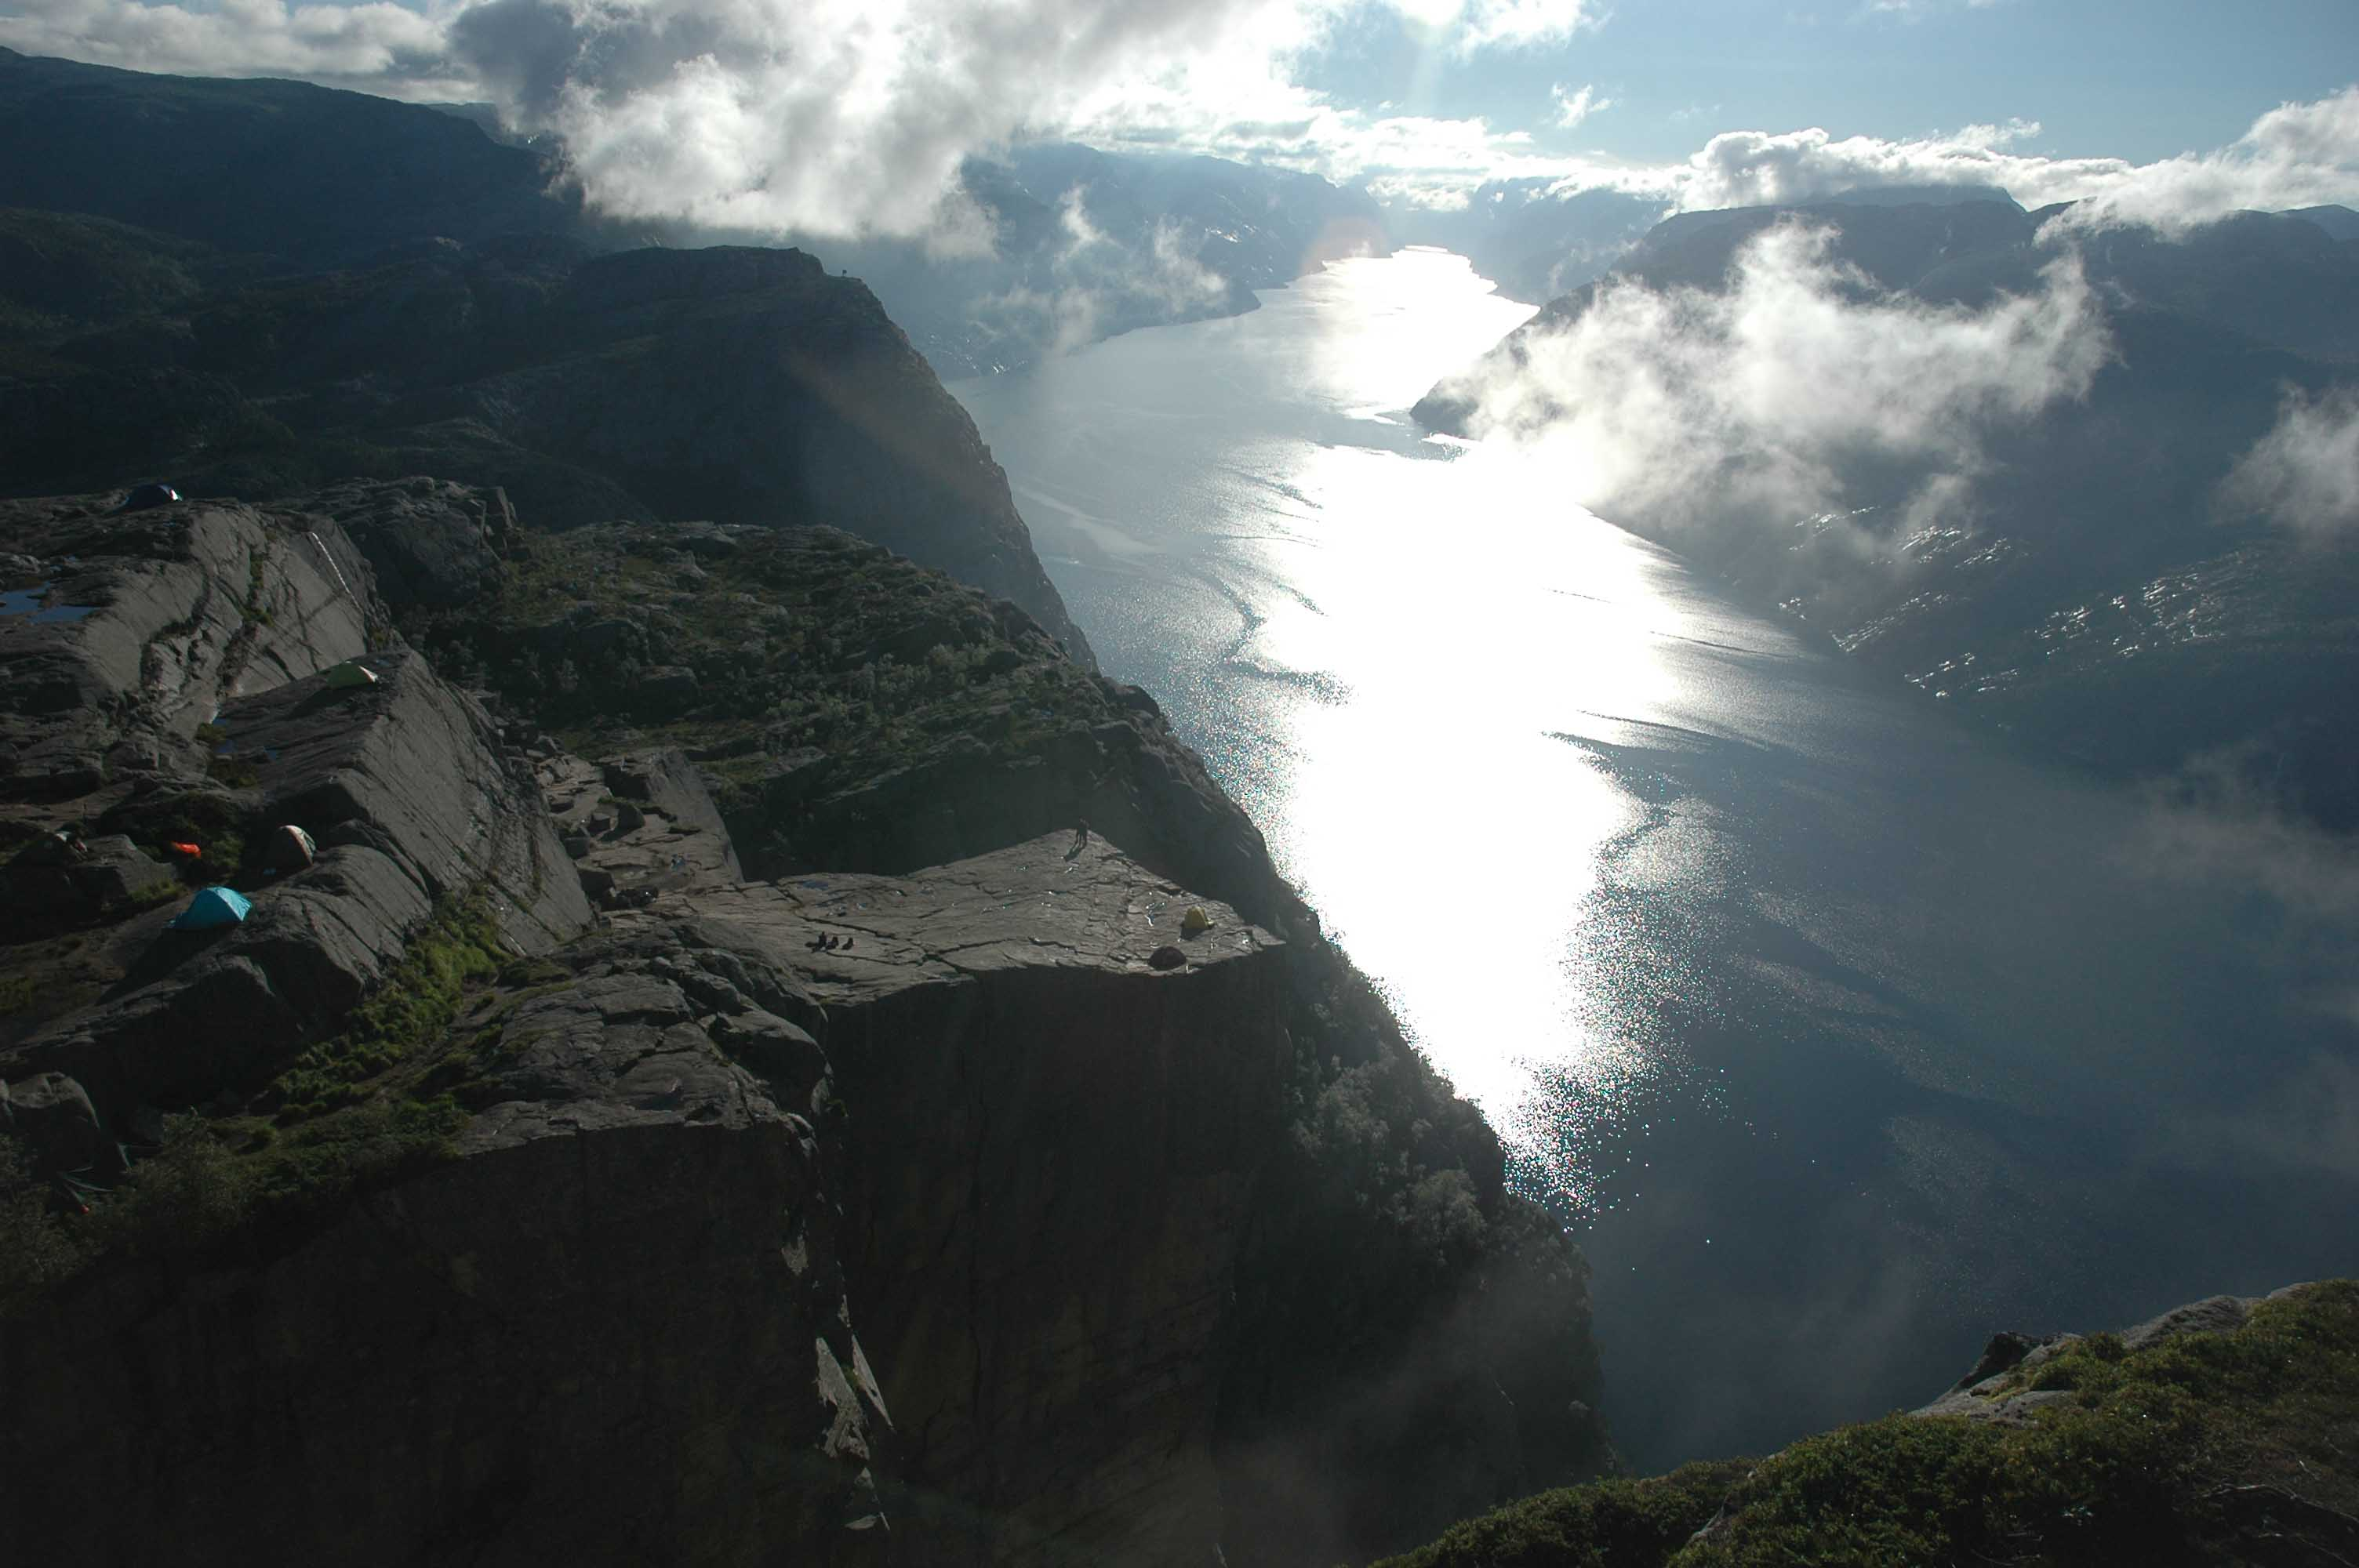 Amazing photo of Lysefjorden in Norway.